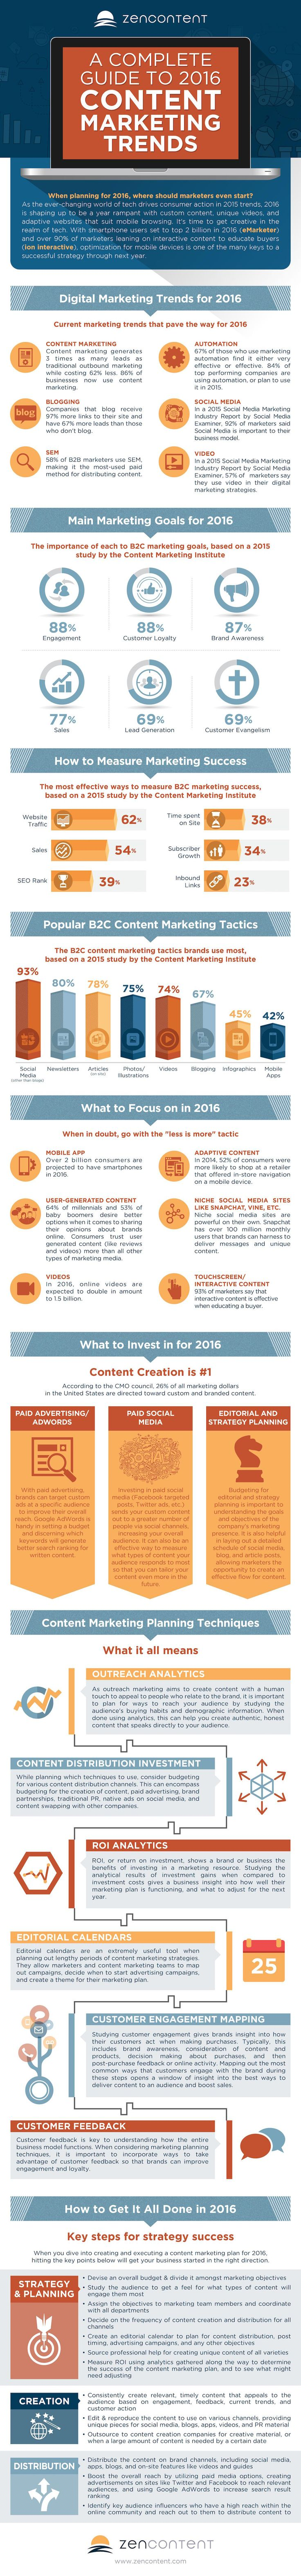 A Complete Guide to 2016 Content Marketing Trends